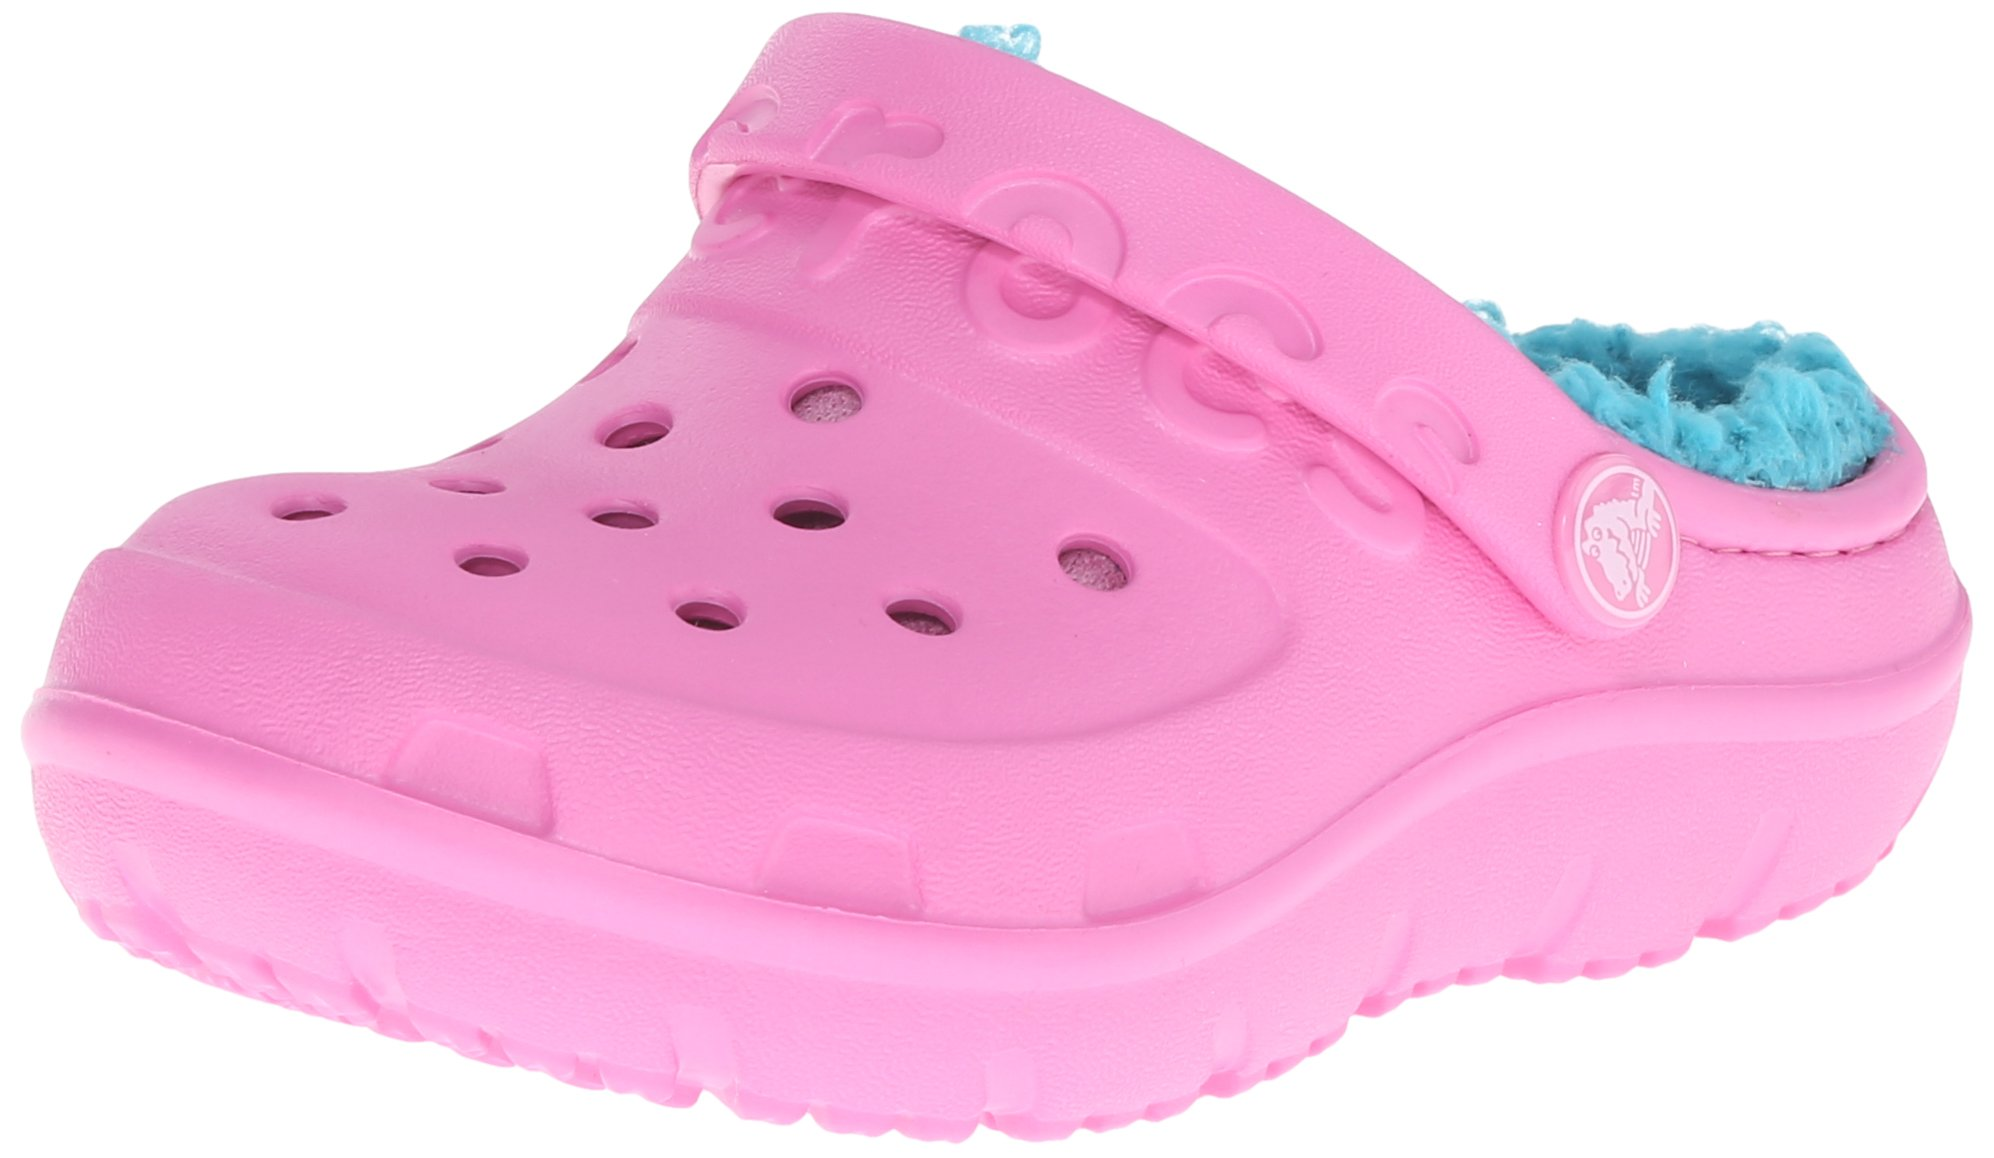 crocs Hilo Lined Clog (Toddler/Little Kid), Party Pink/Turquoise, 11 M US Little Kid